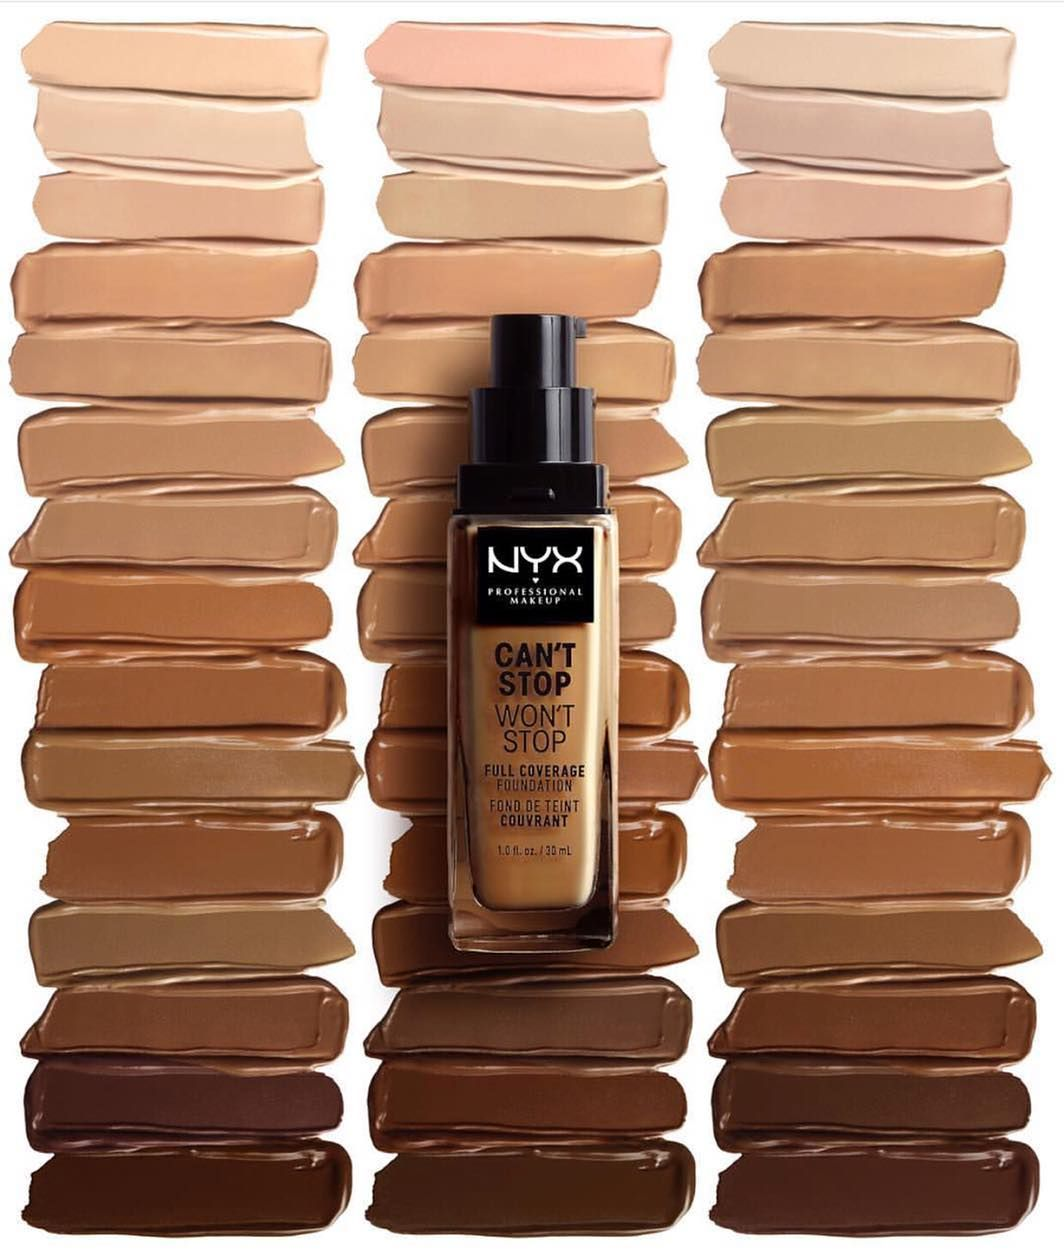 New Nyx Can T Stop Won T Stop Full Coverage Foundation In 45 Shades Collab Wi With Images Full Coverage Foundation Nyx Professional Makeup Full Coverage Foundation Makeup